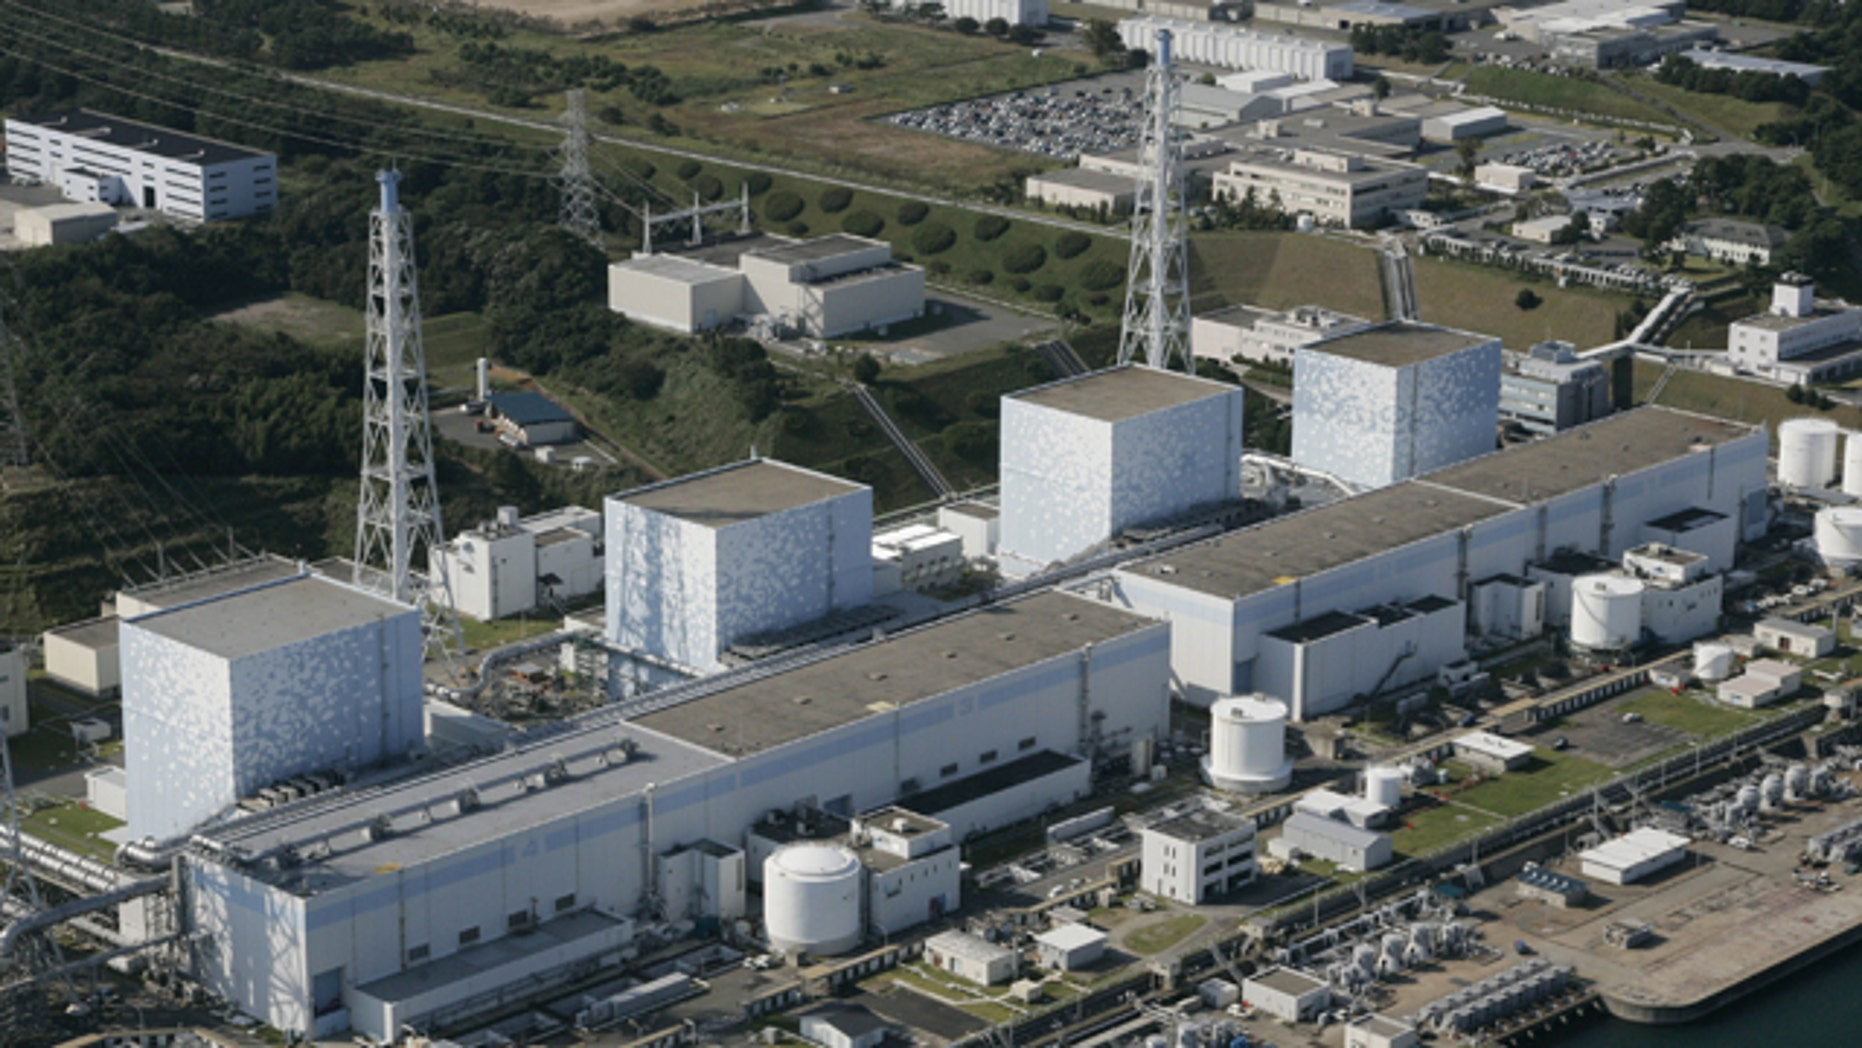 This file photo shows the Fukushima Daiichi power plant, which had its cooling system fail Friday after a massive earthquake caused a power outage